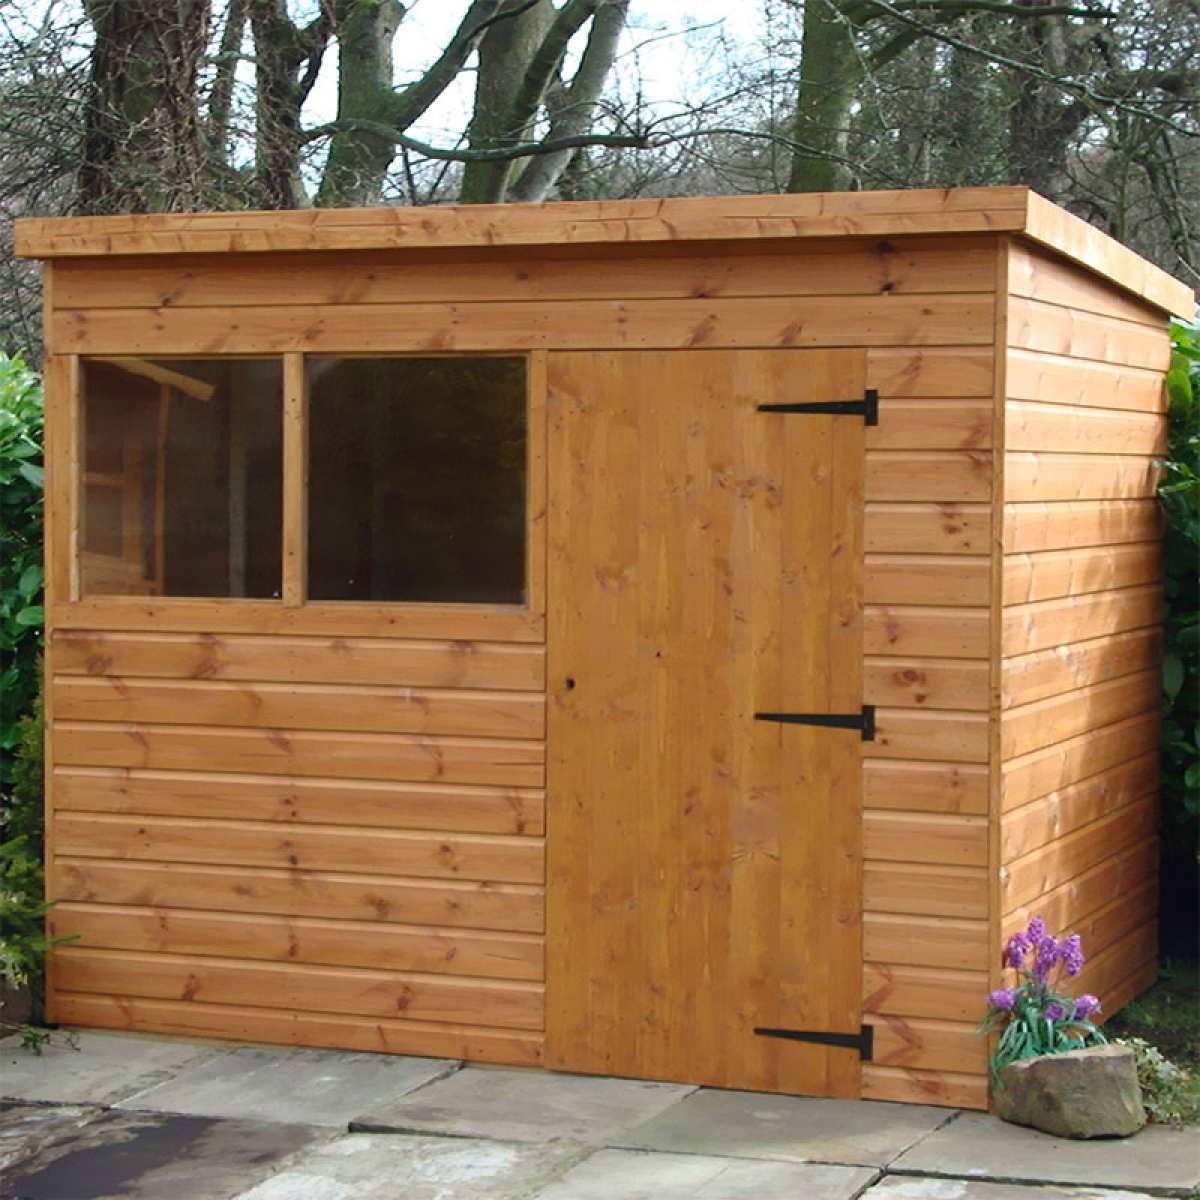 pent shed websterstimber 800px by Image by Websters Timber